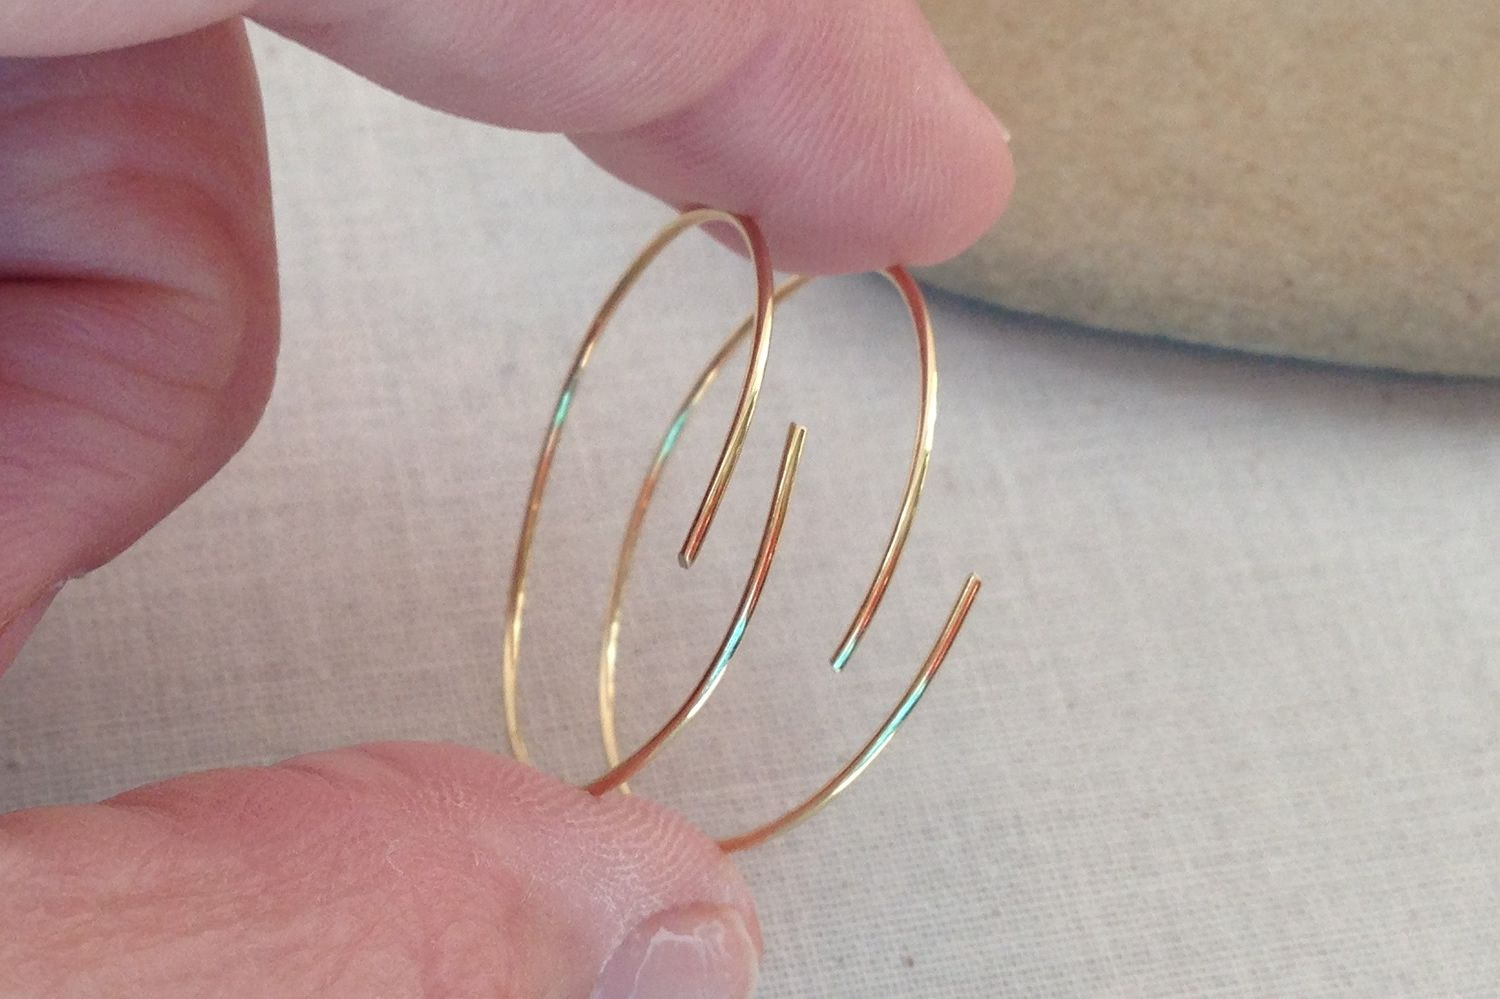 Cut hoops so there is about 1/4 inch overlap in the center